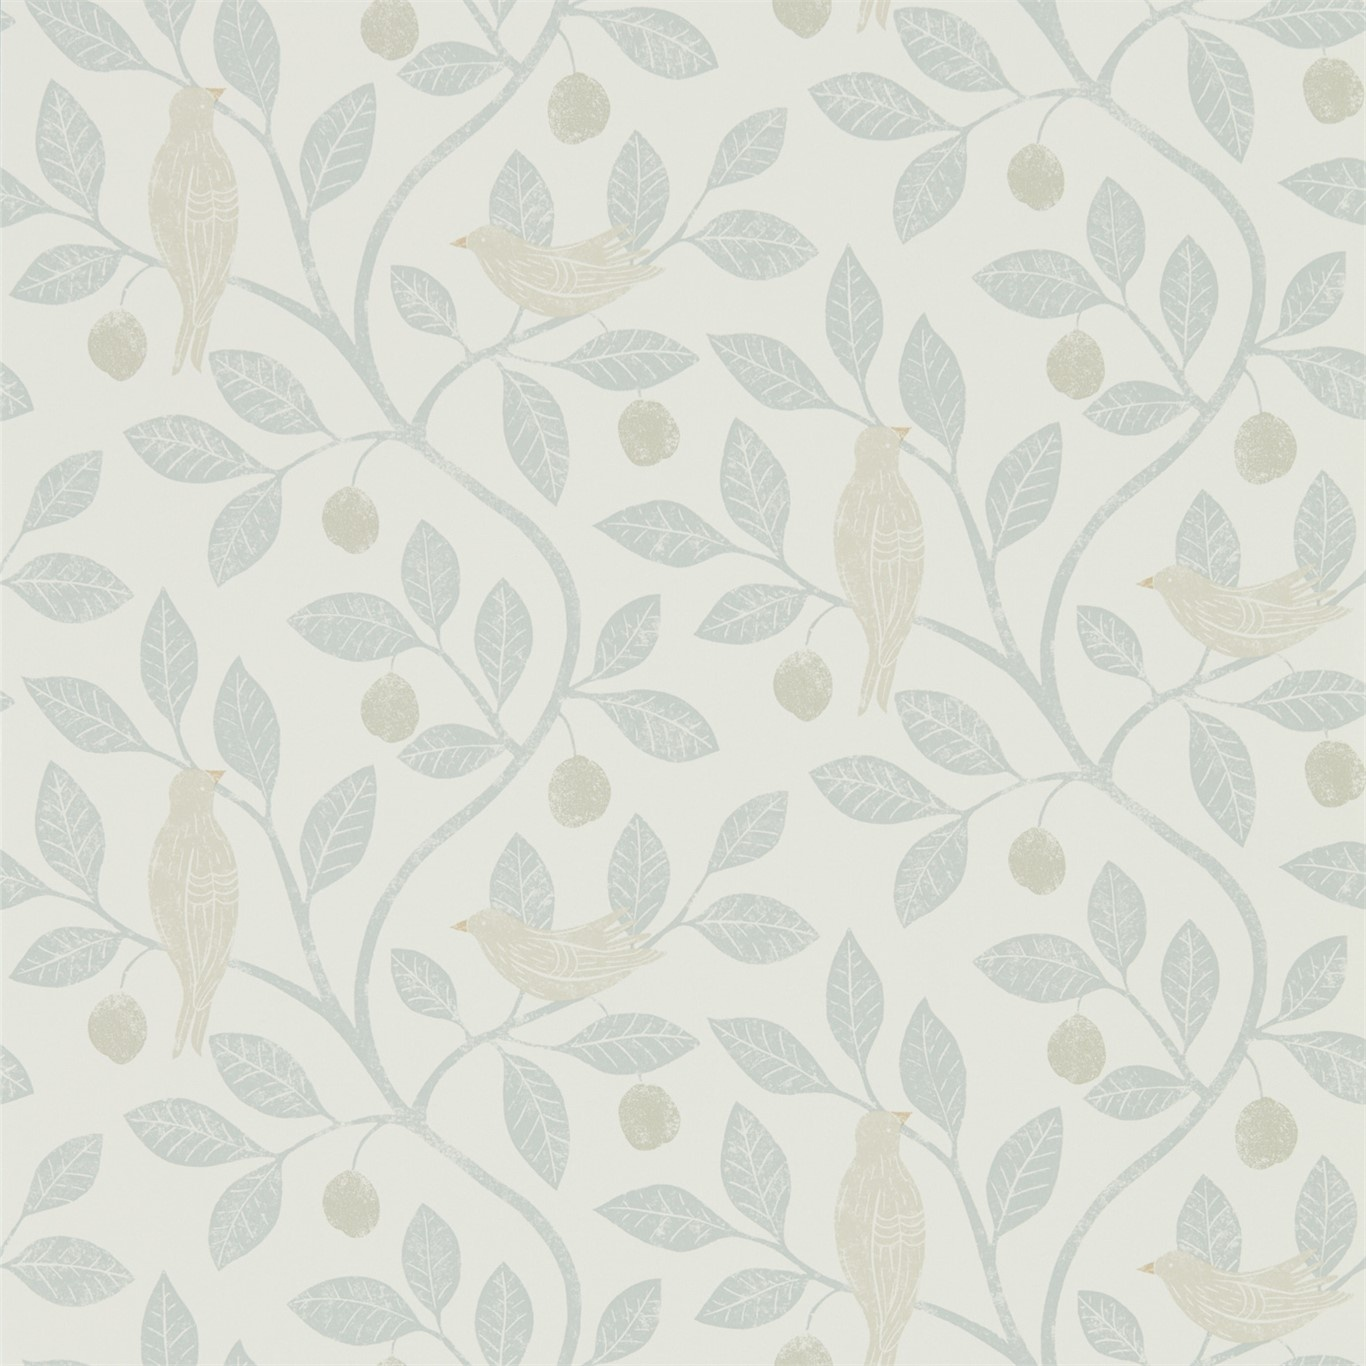 Image of Sanderson Home Damson Tree Mineral/Dove Wallpaper 216365